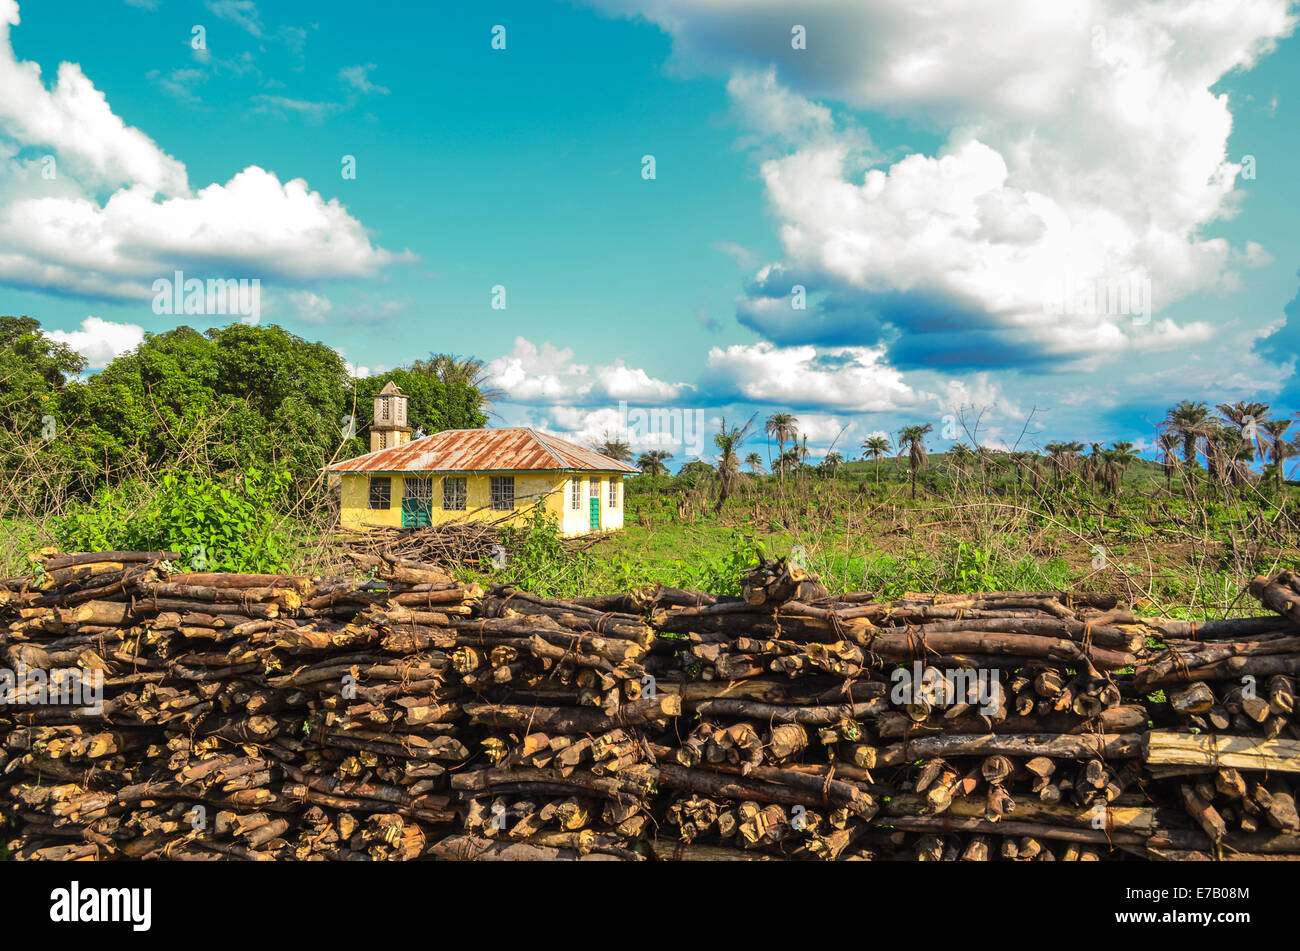 Piles of wood and a rural house in Sierra Leone, Africa - Stock Image